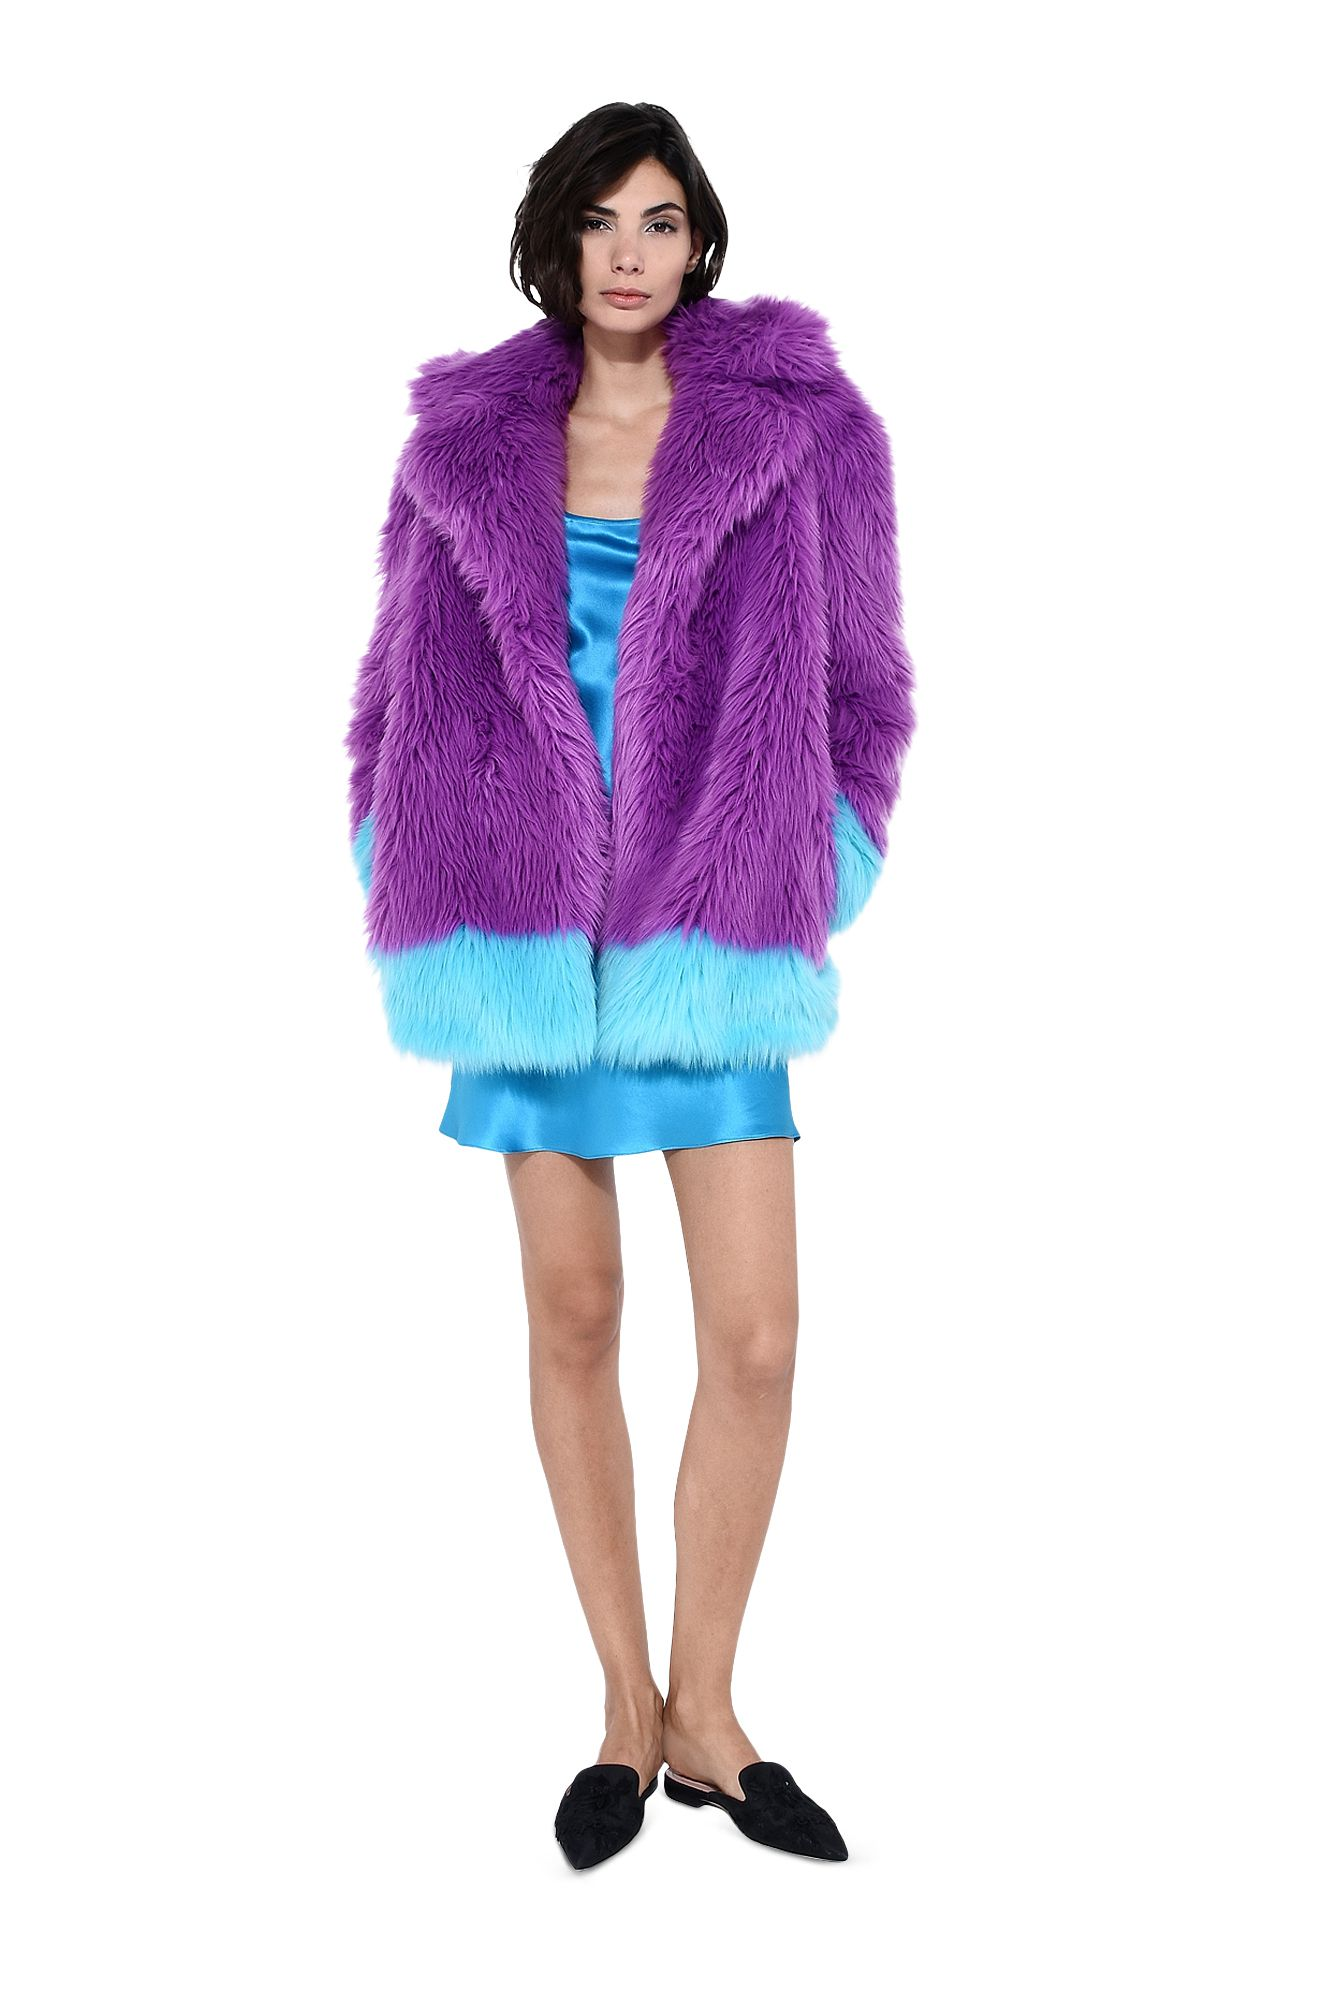 Faux fur fluo purple and light blue coat